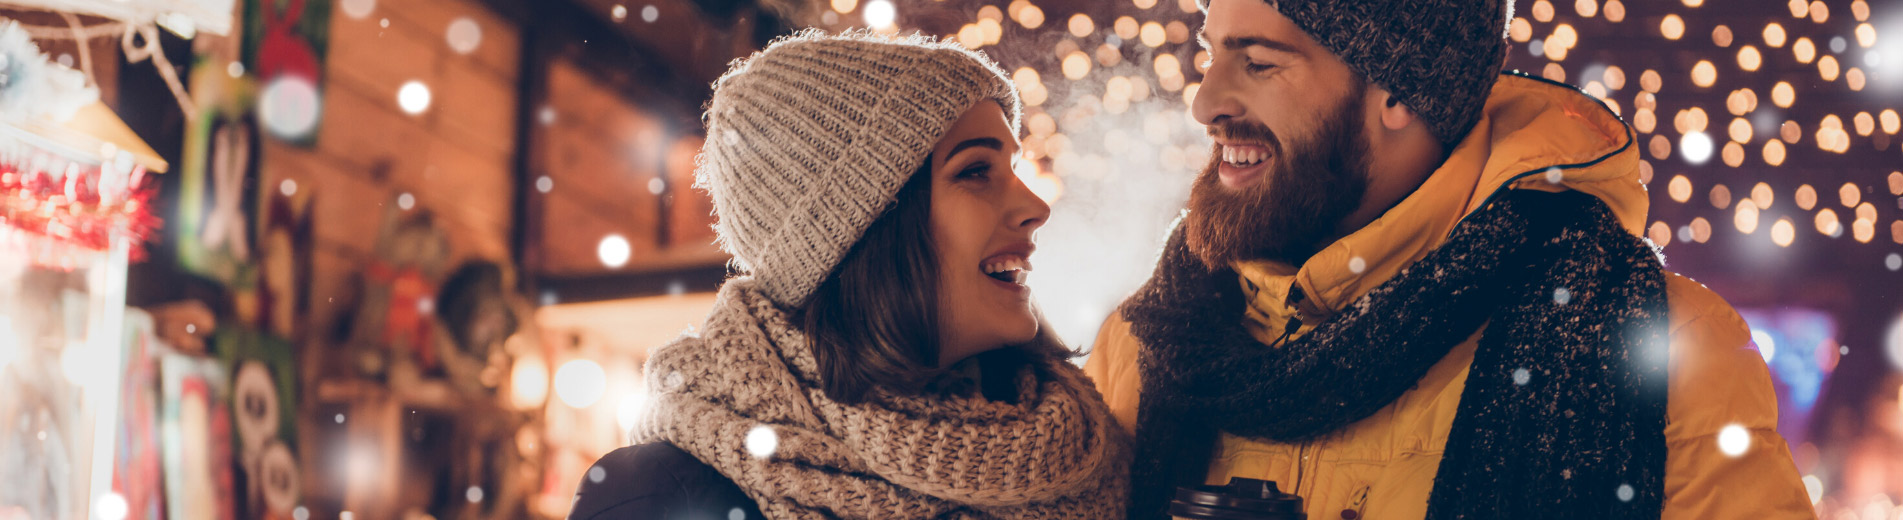 Warmly dressed happy young couple smiling at each other with holiday lights behind them.